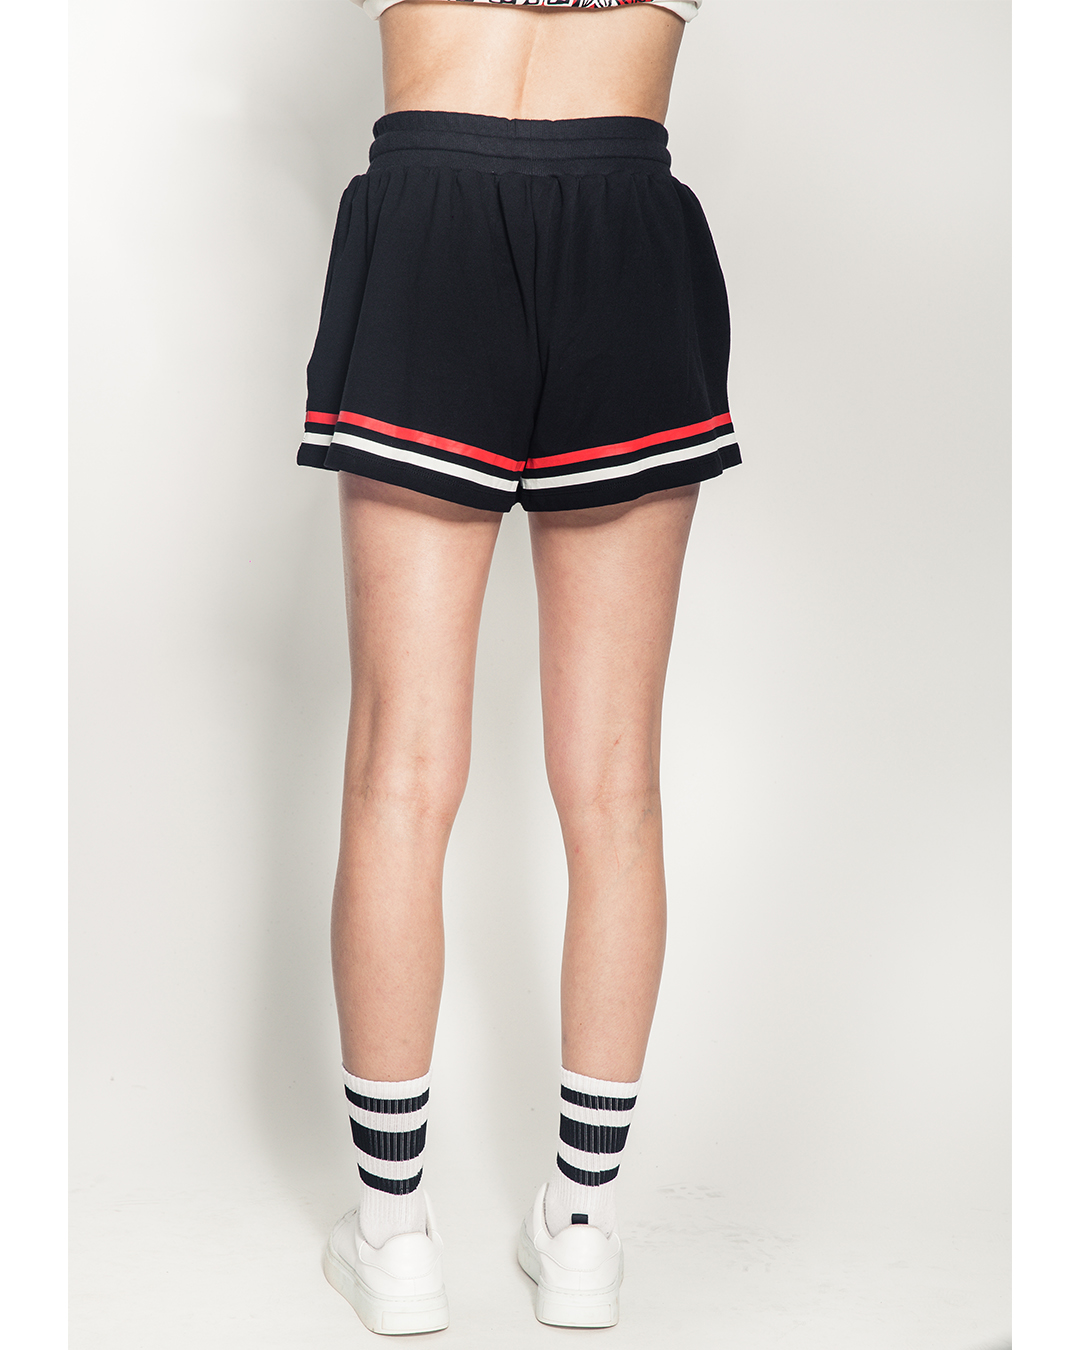 Keep Watch Girl's Shorts (Black)